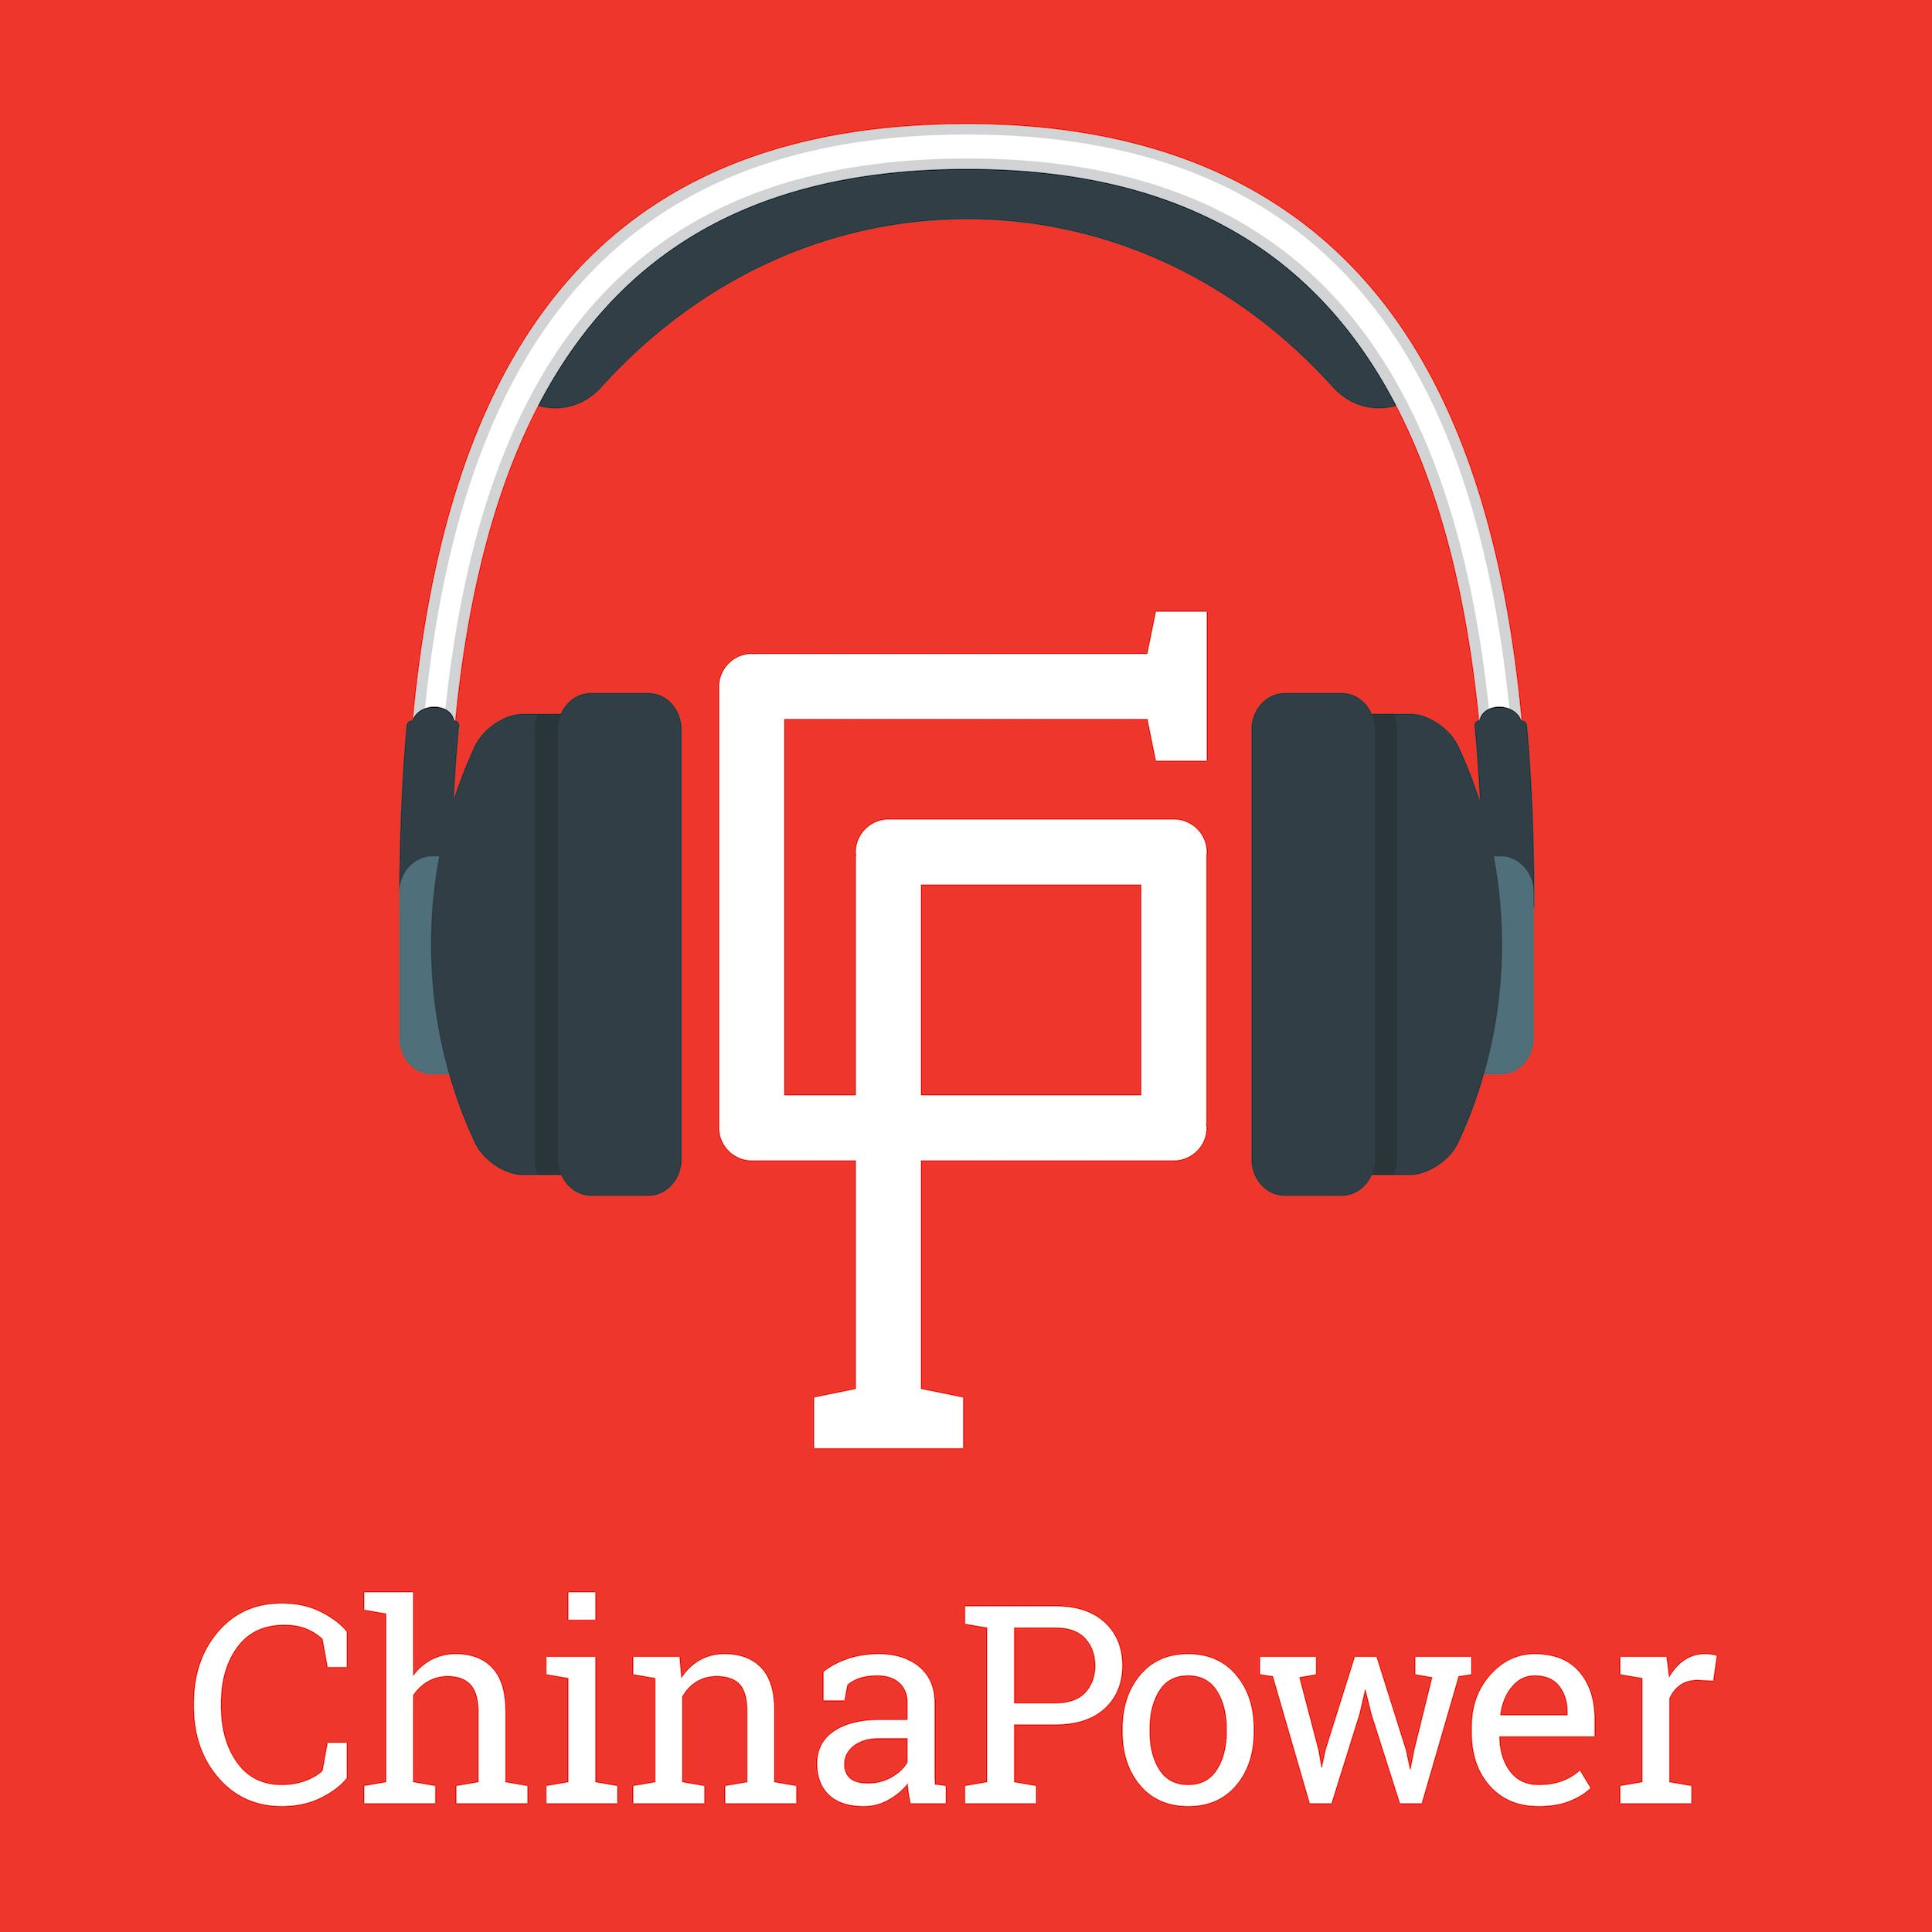 Xi Jinping's Military-Civil Fusion Project: A Conversation with Greg Levesque